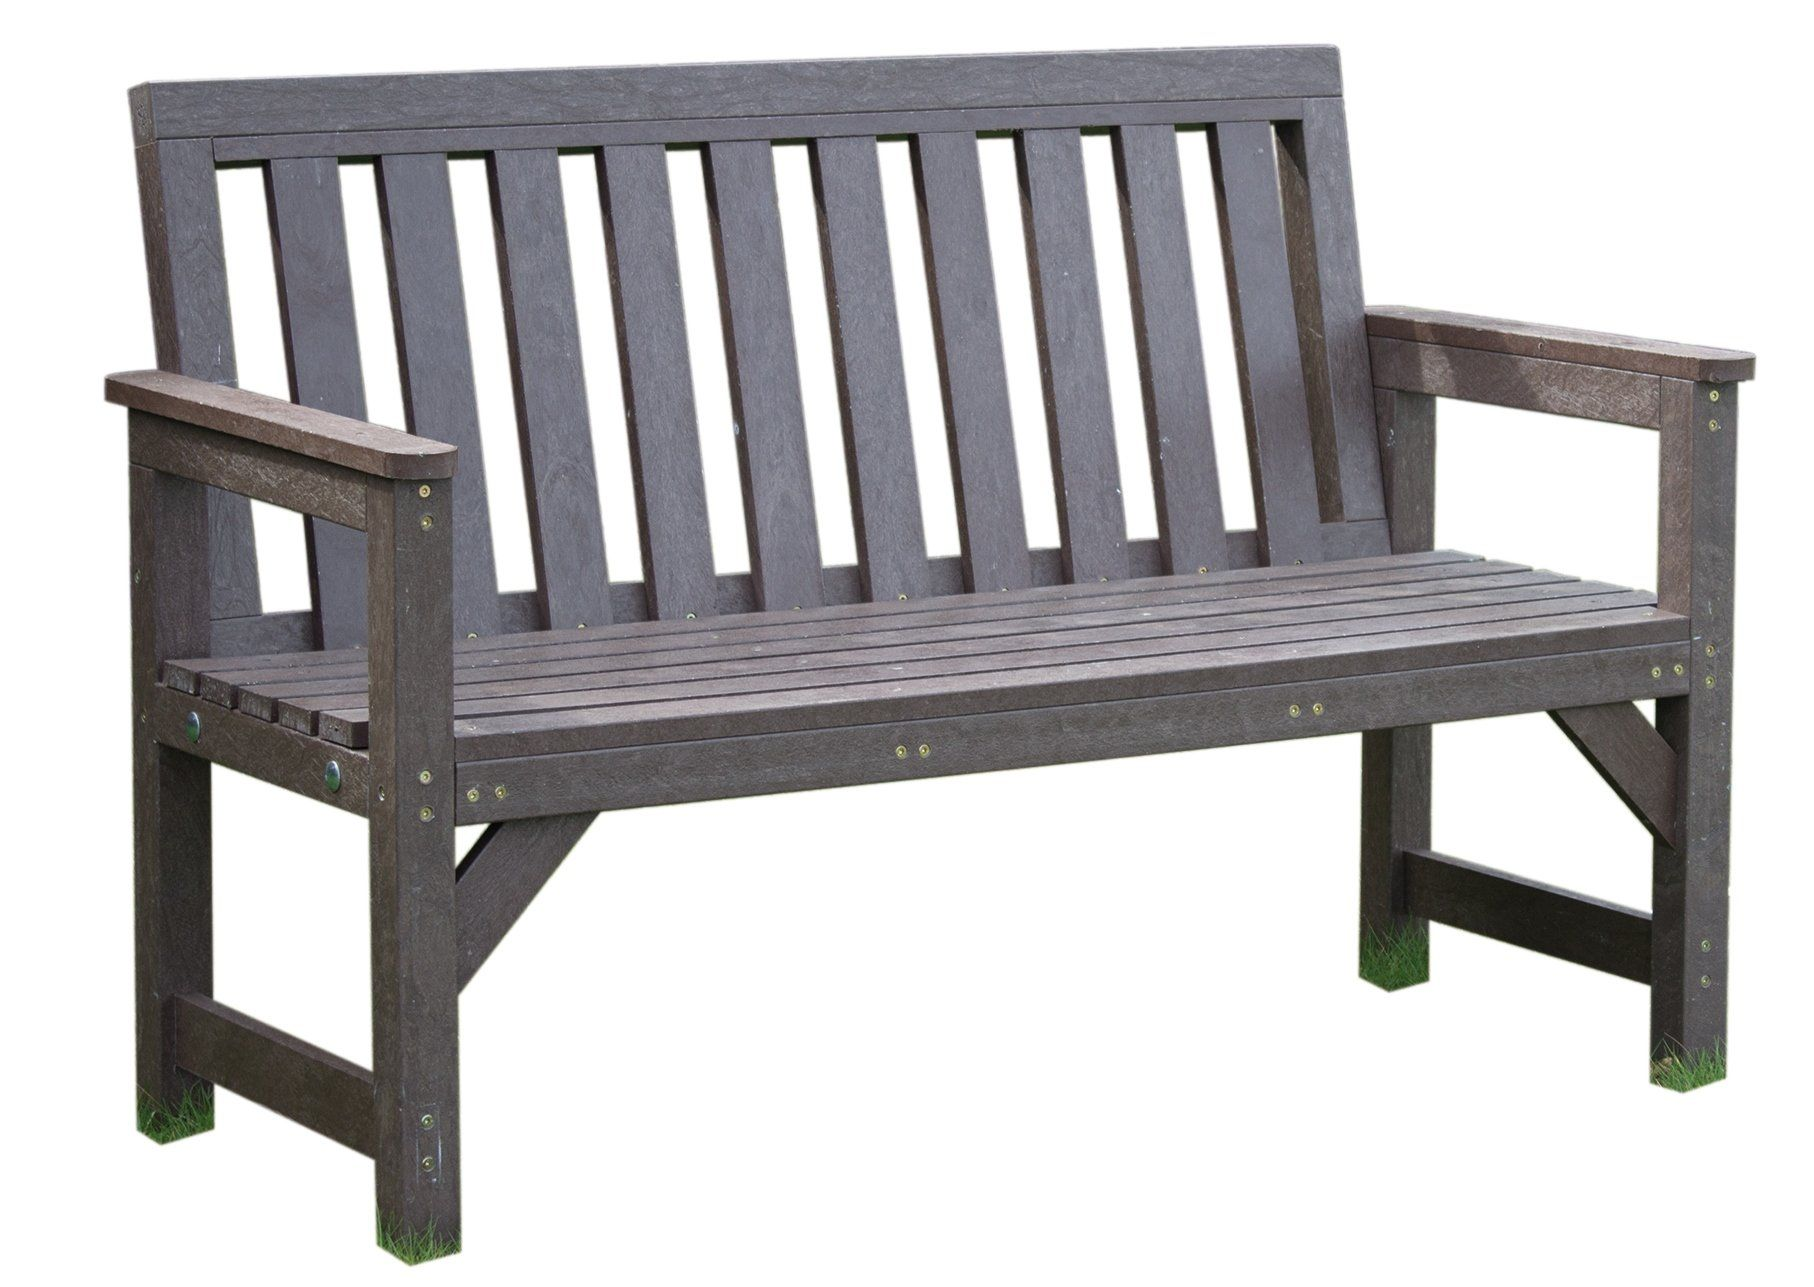 Prime Outdoor Seat Bench Garden Furniture 2 Seater 100 Recycled Unemploymentrelief Wooden Chair Designs For Living Room Unemploymentrelieforg